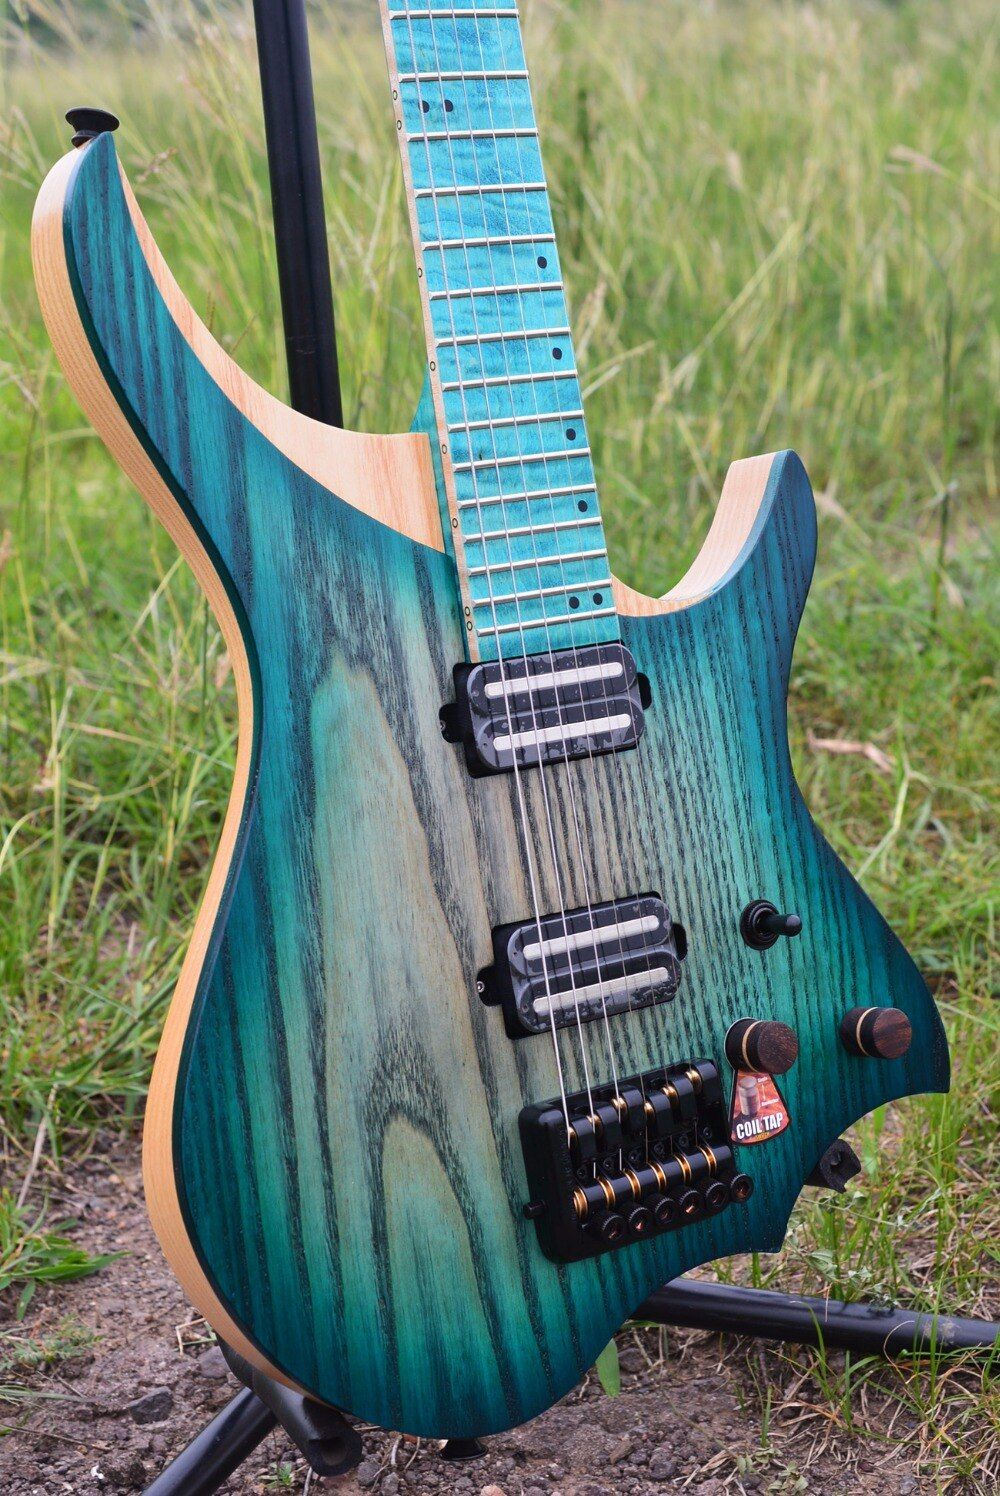 NK Headless Electric Guitar steinberger style Model blue burst Color Flame maple Neck in stock Guitar free shipping